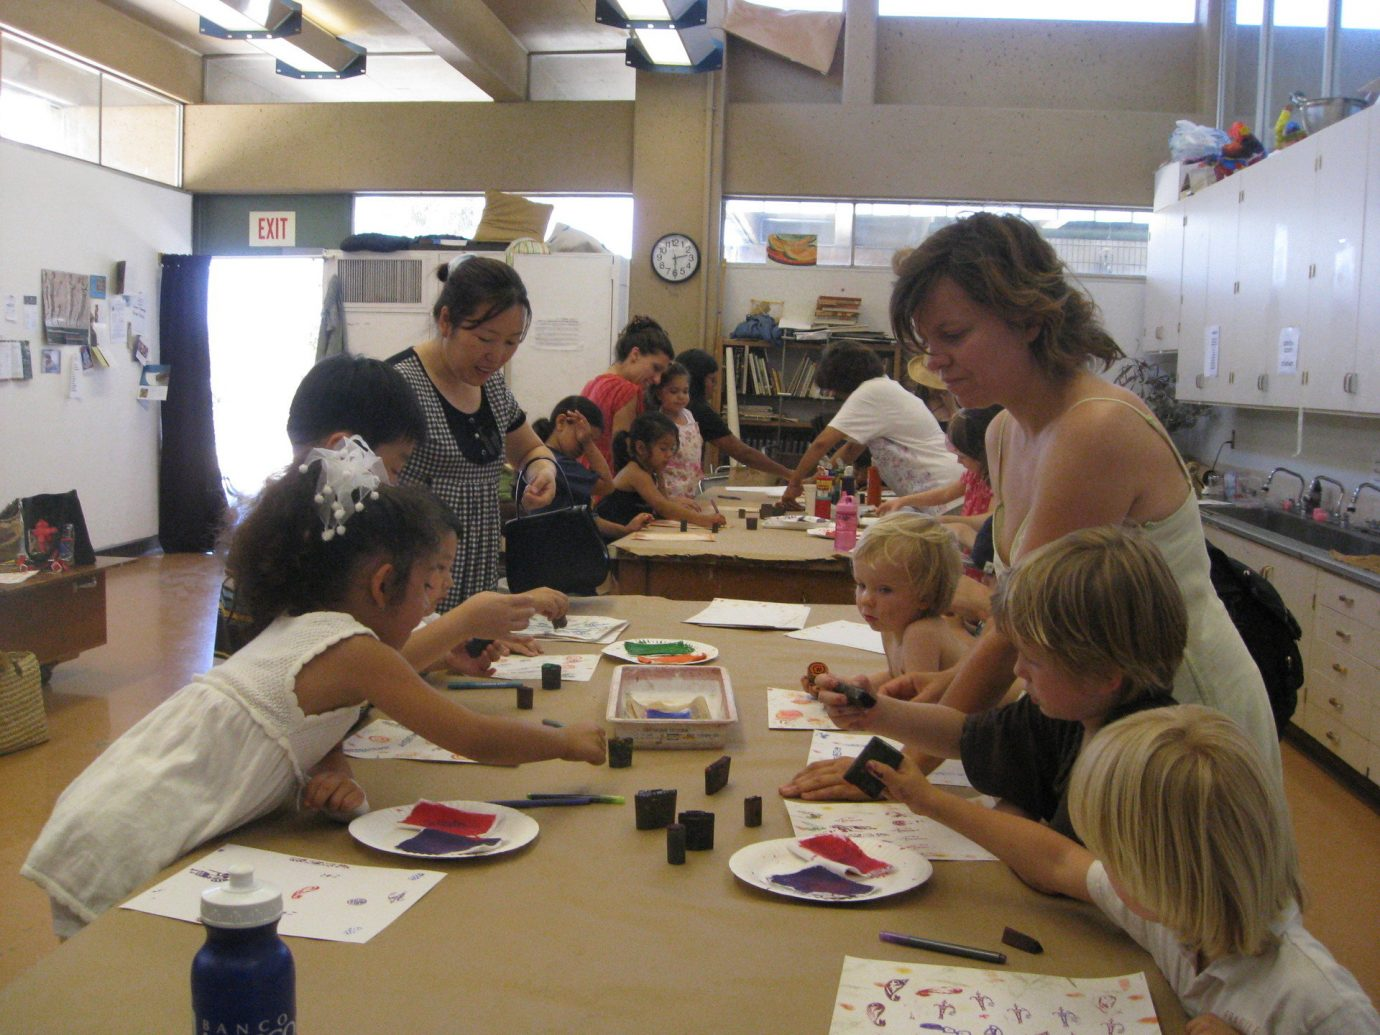 activities art Budget children class crafts painting people person indoor group workshop learning